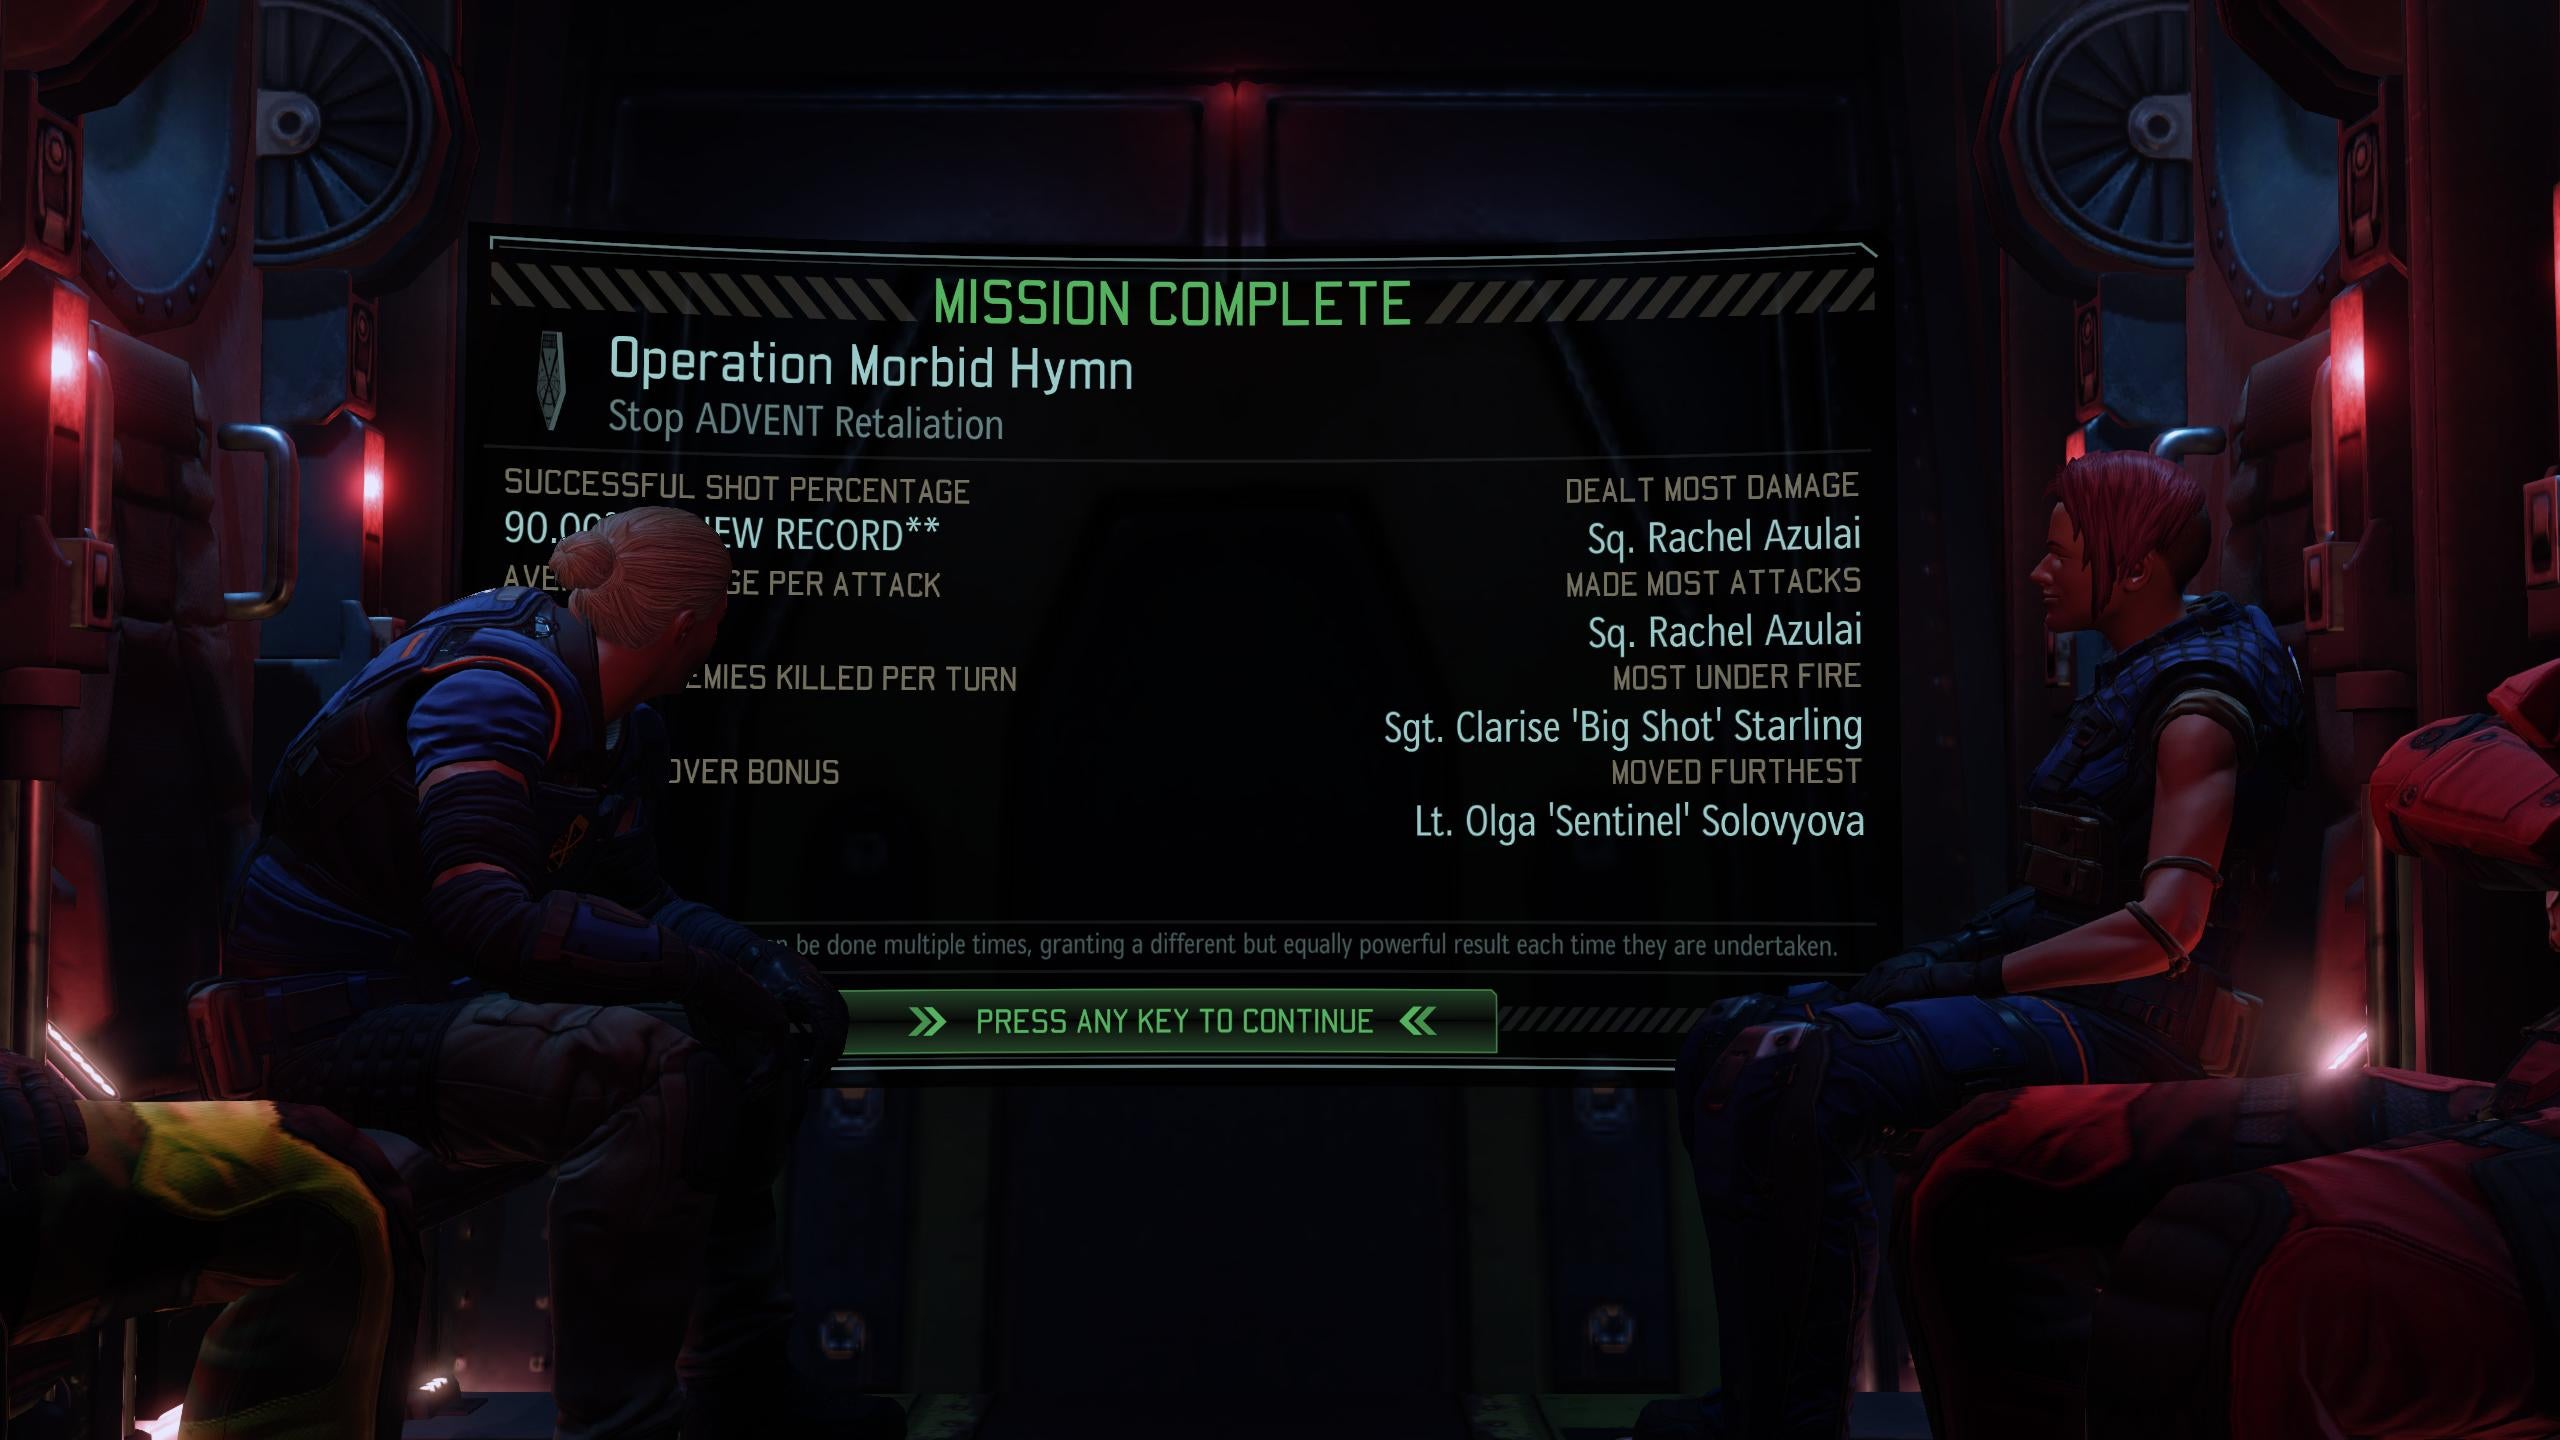 An Unlikely Fix For XCOM 2's Long-Arse Back To Base Load Times